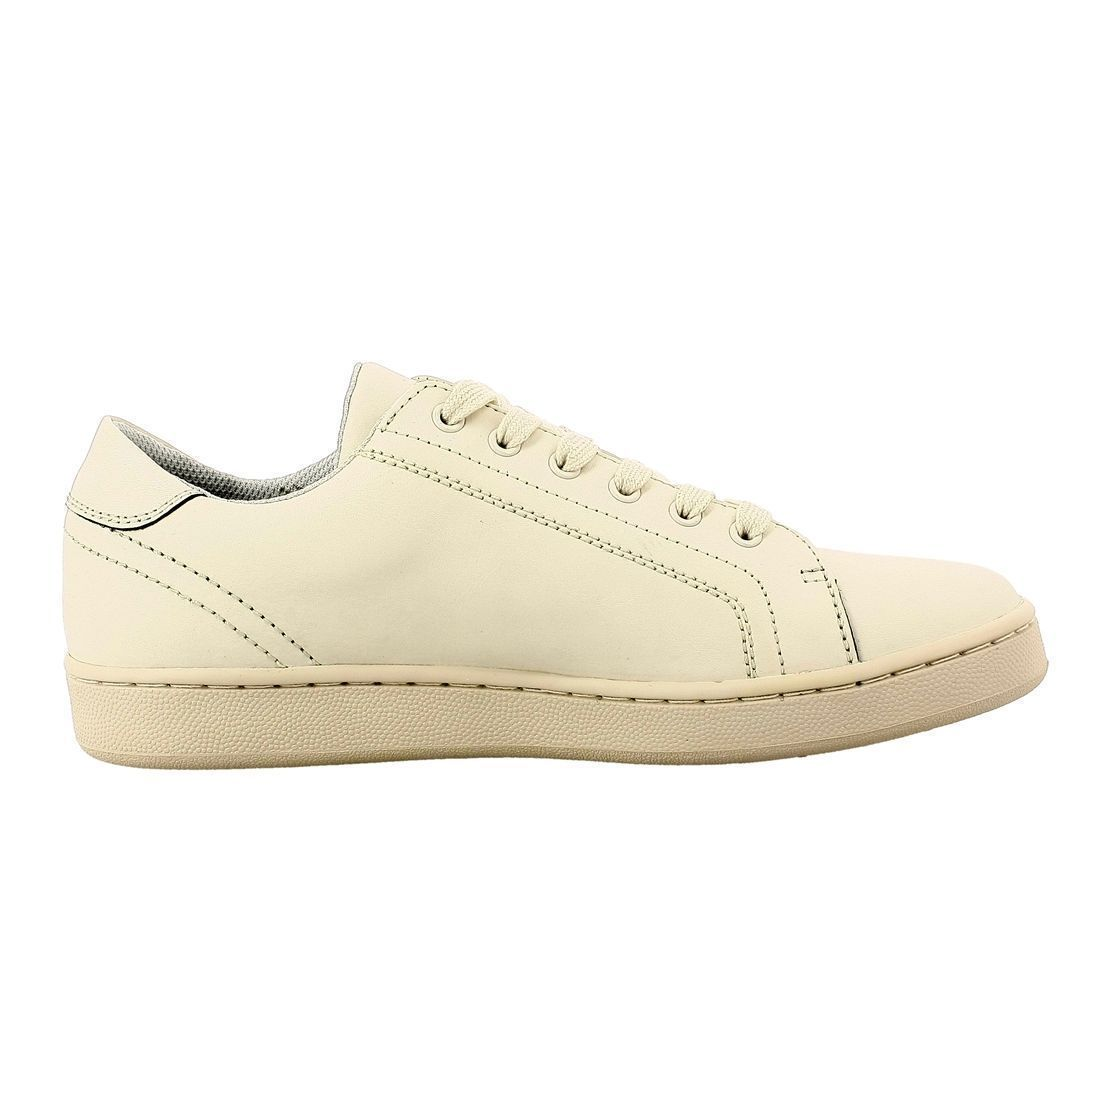 KICK COL FMALL4-LEA12:BEIGE/SIMILI CUIR/TOILE/SYNTHETIQUE/Beige